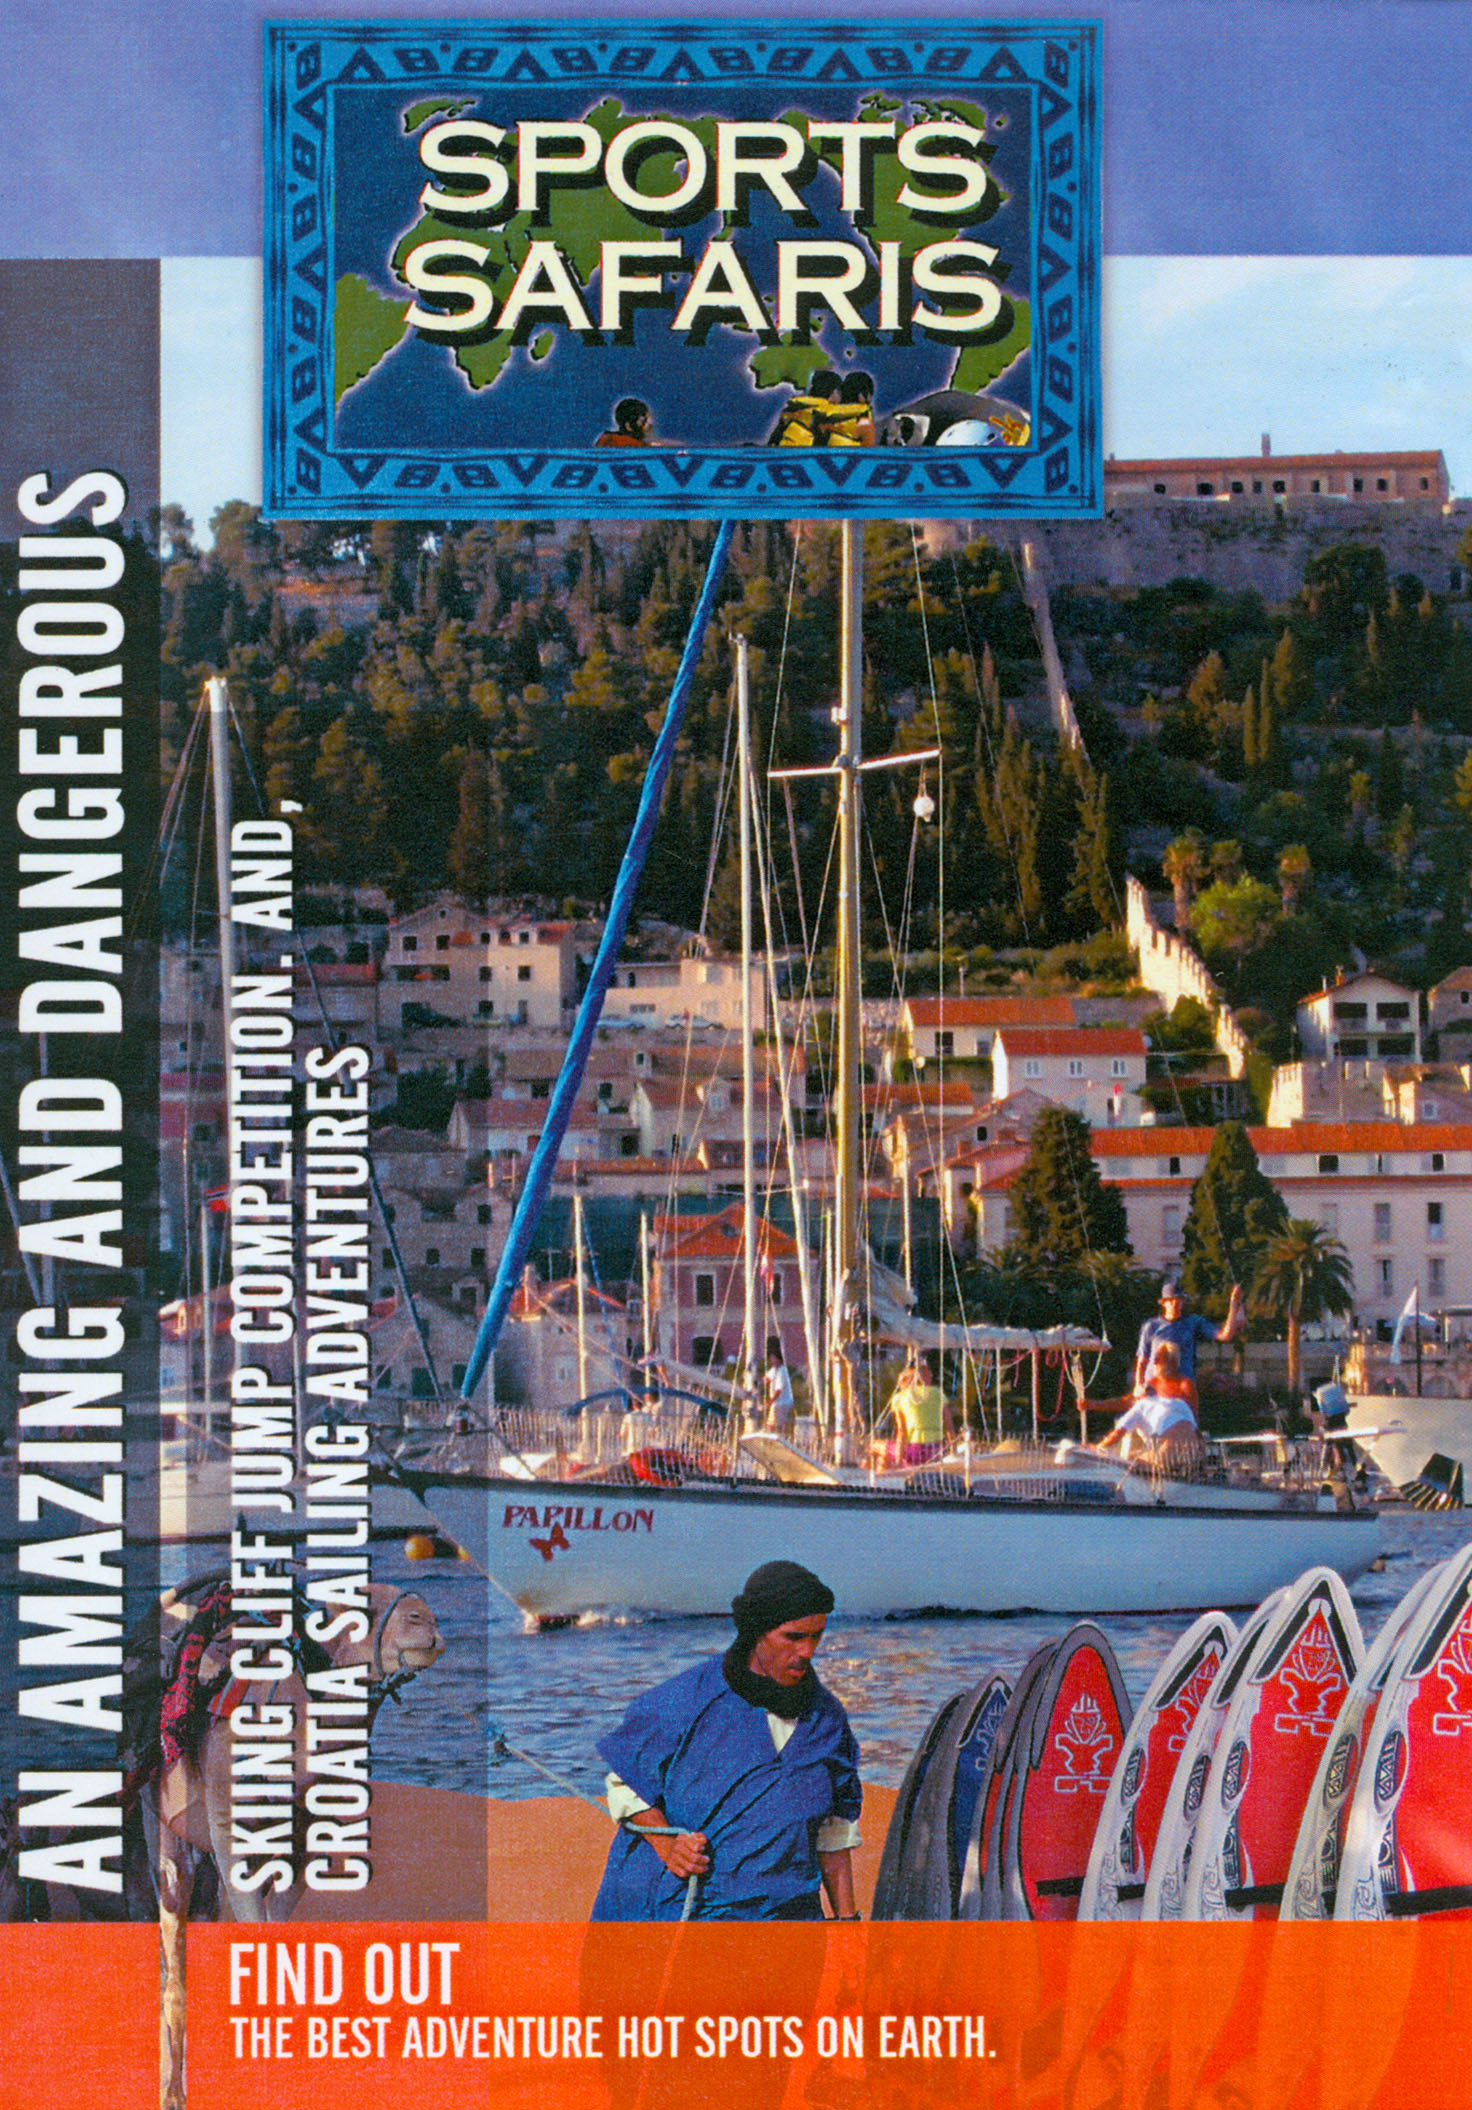 Sports Safaris: An Amazing and Dangerous Sking Cliff Jump Competition and Croatia Sailing